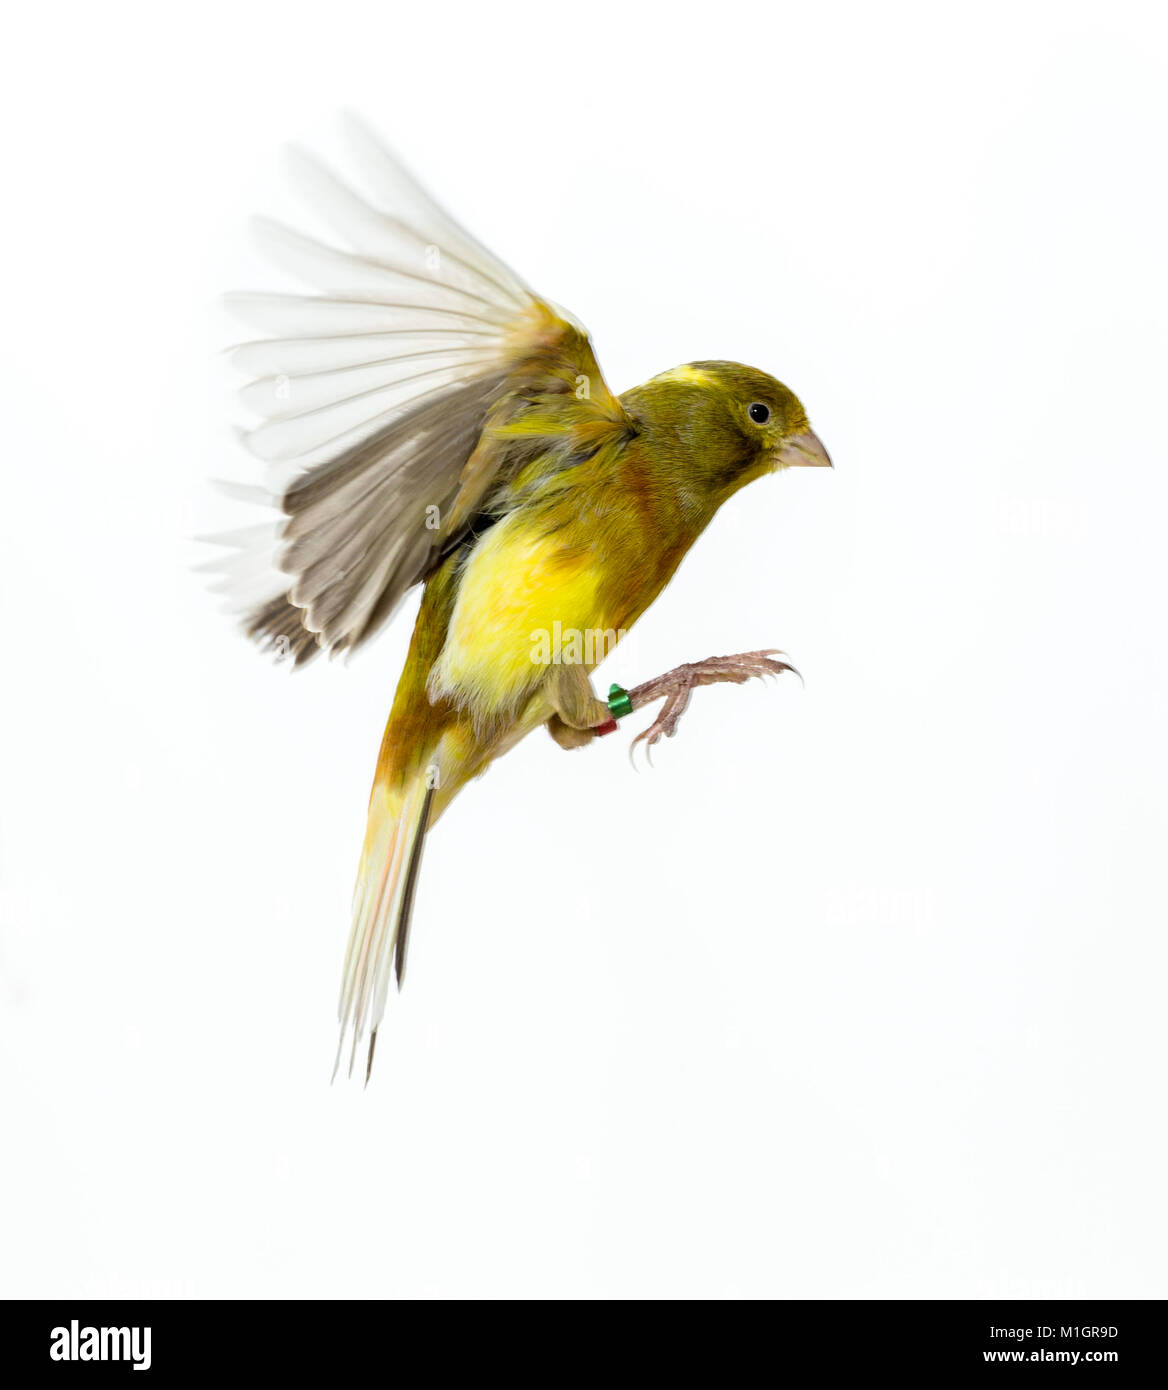 Domestic canary in flight, Studio picture against a white background - Stock Image